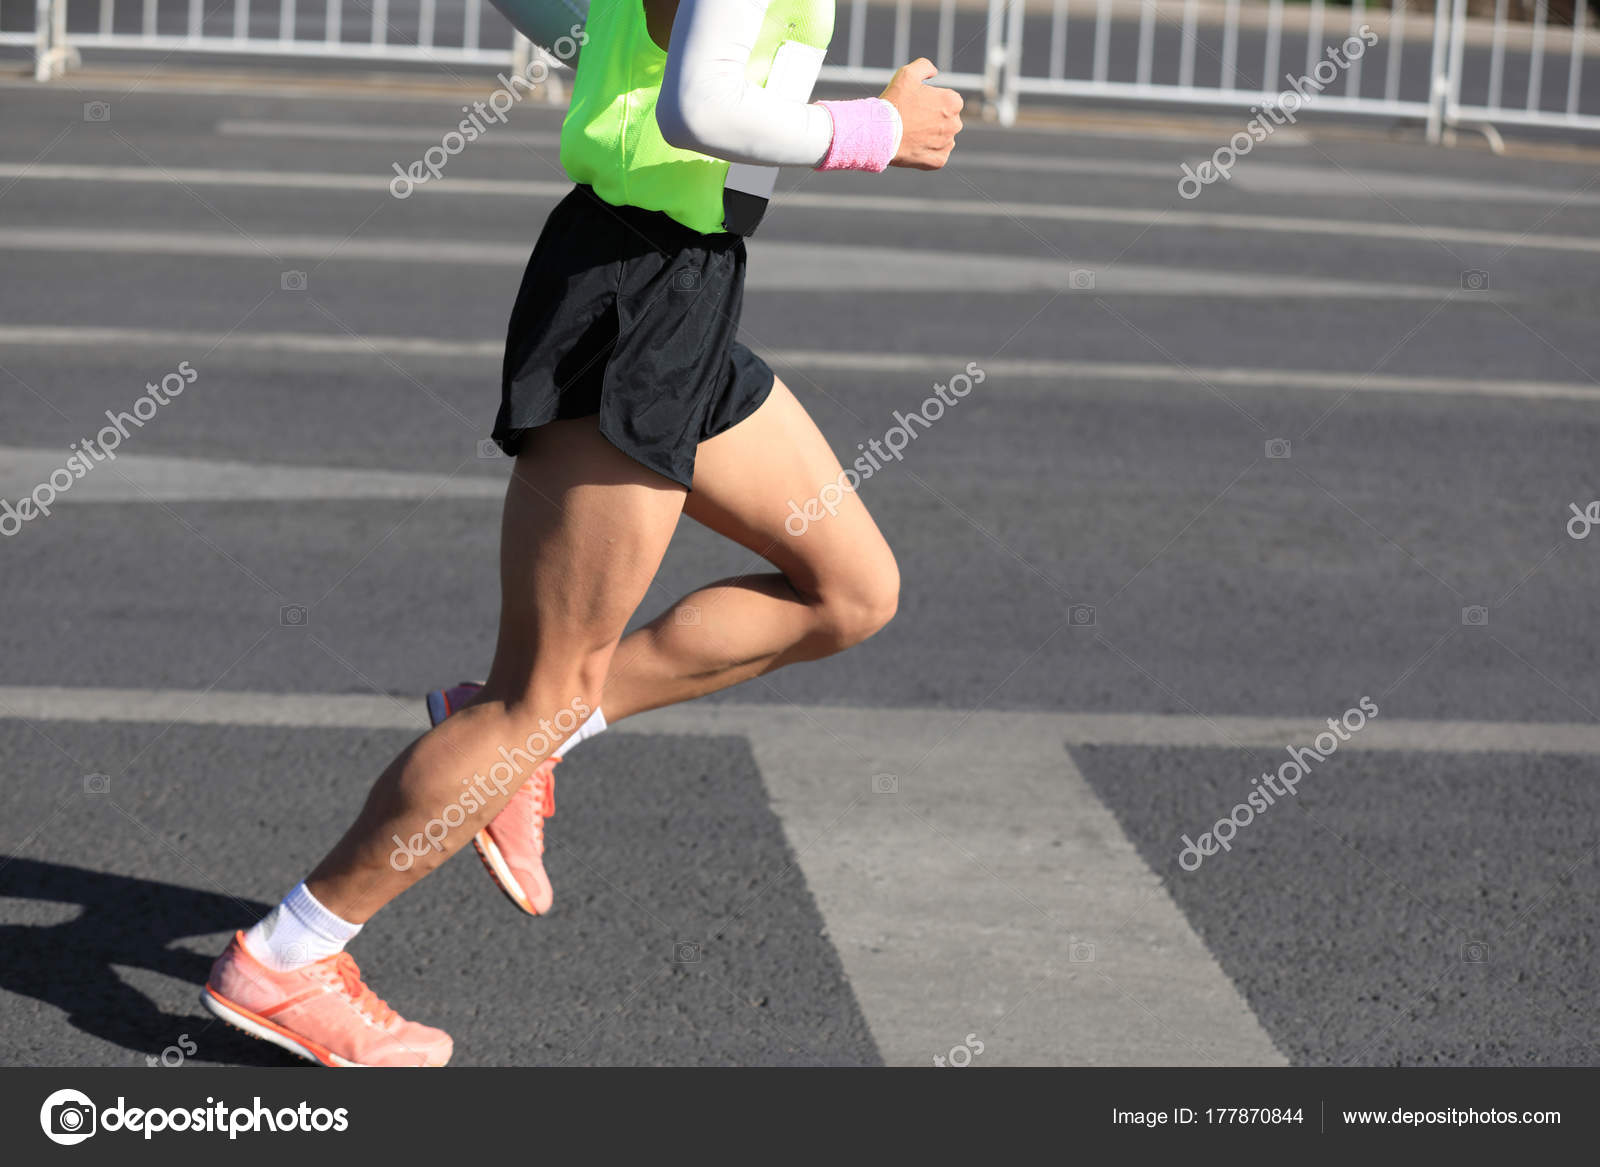 Legs Marathon Runner Running City Road Stock Photo